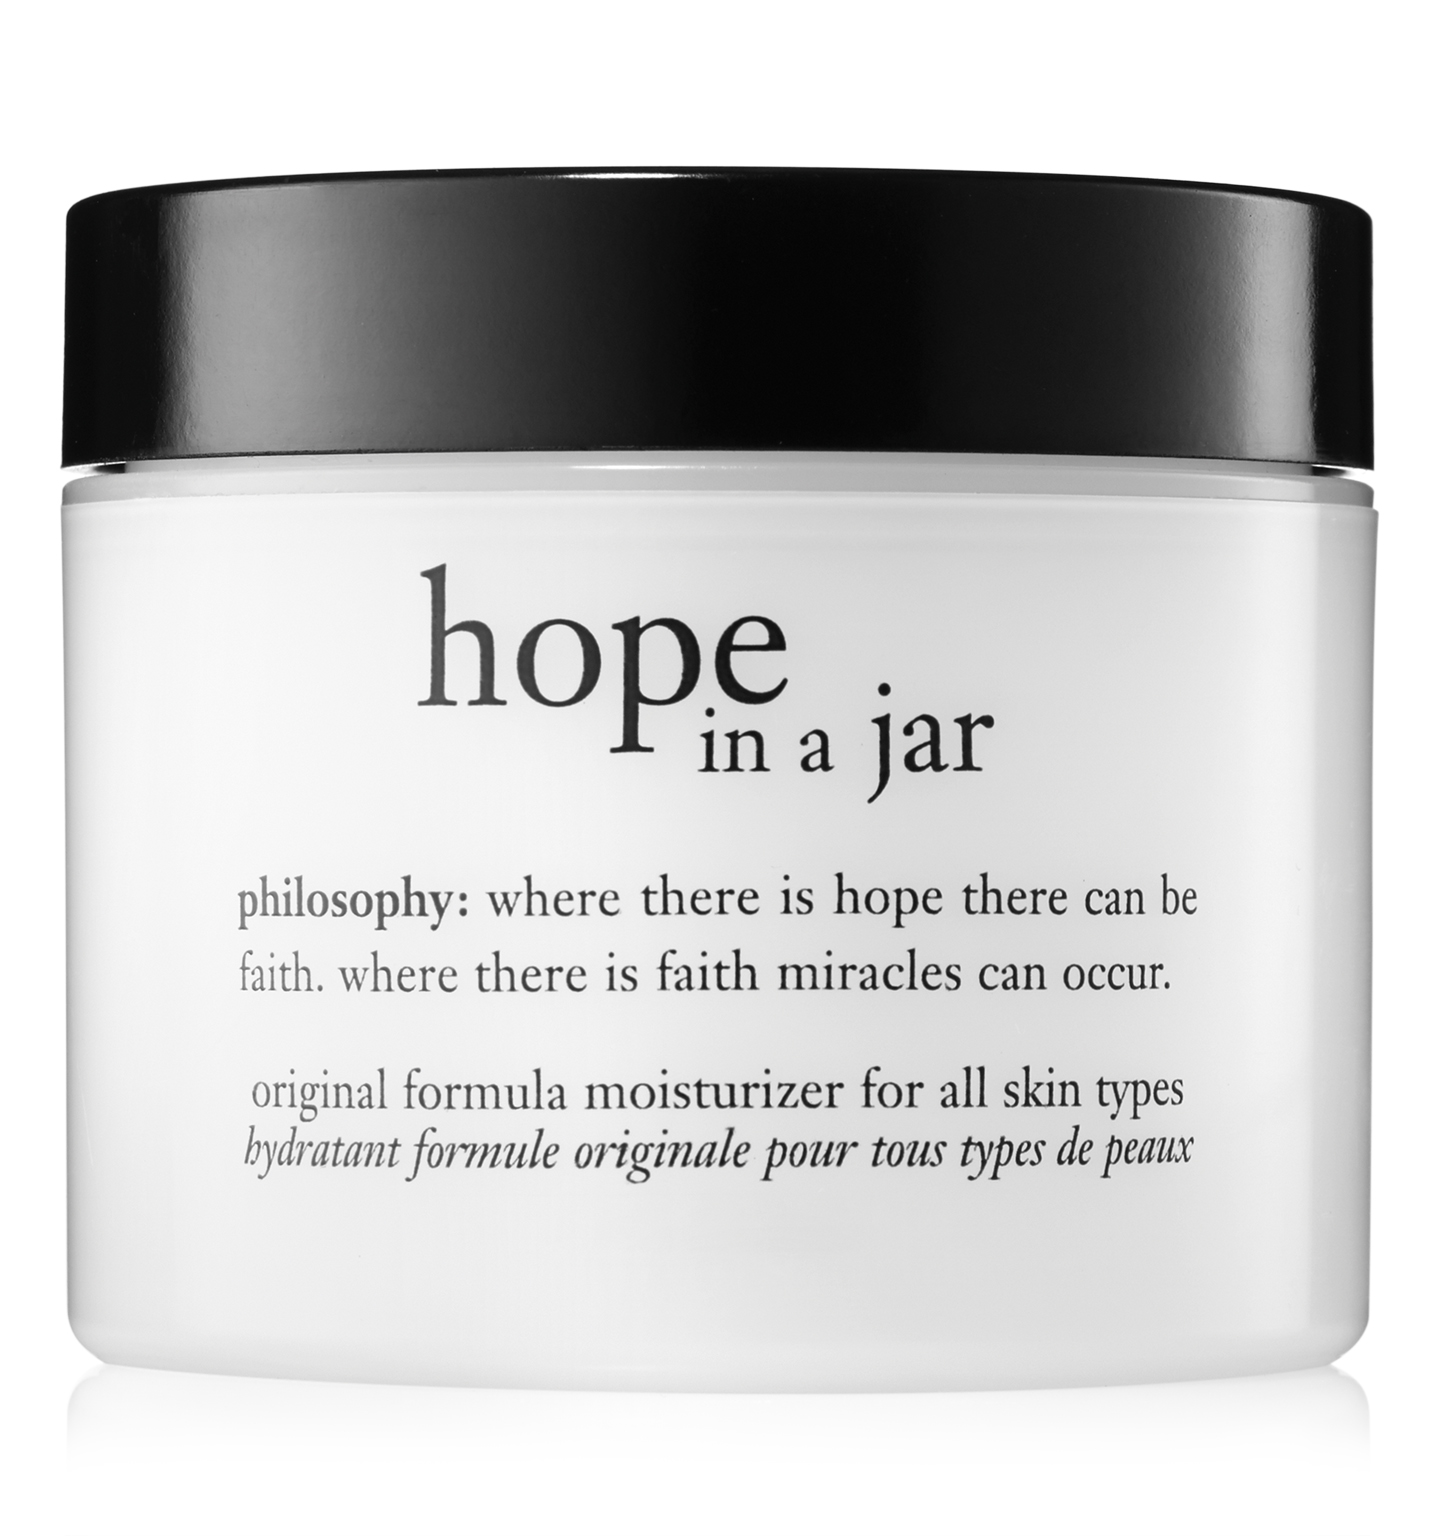 hope in a jar original formula moisturizer for all skin types